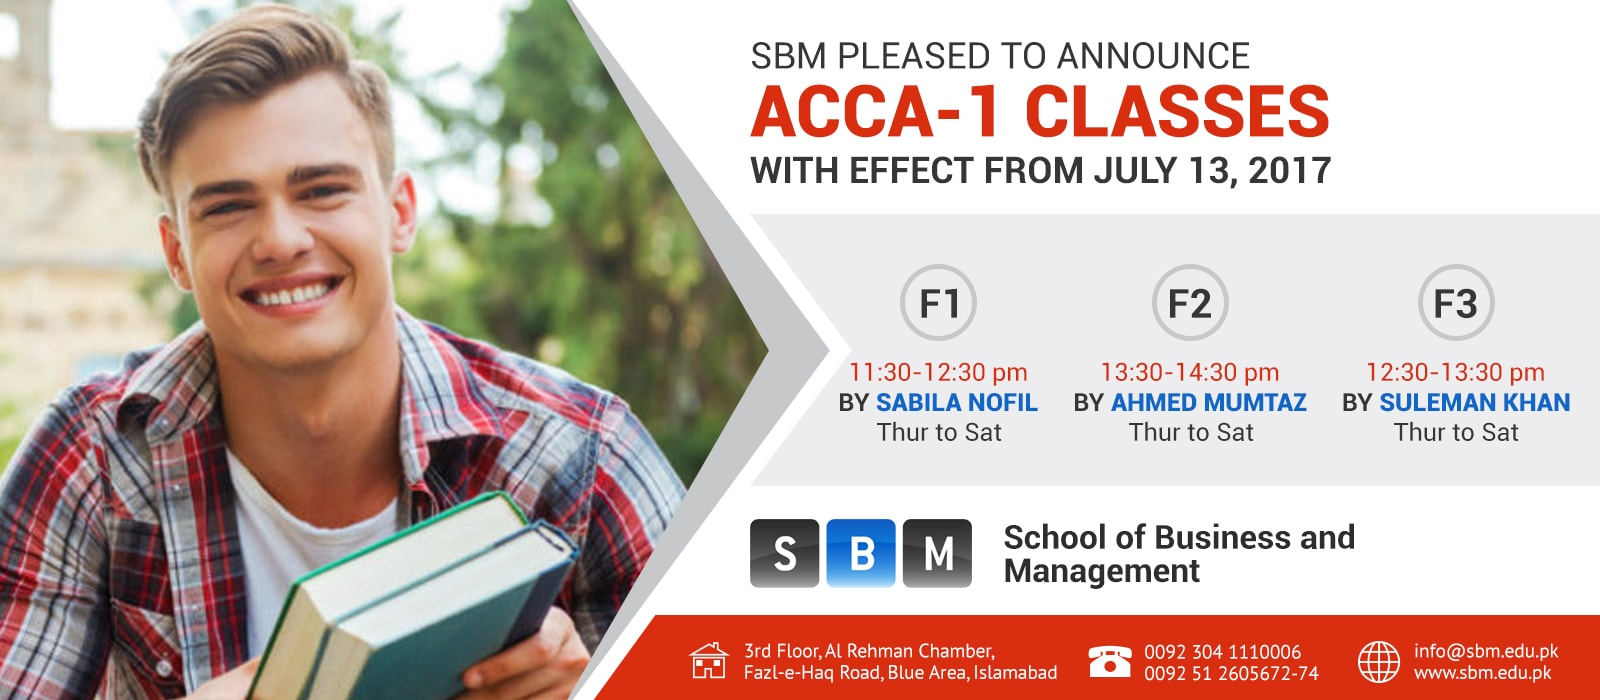 ACCA 1 classes starting from July 13, 2017